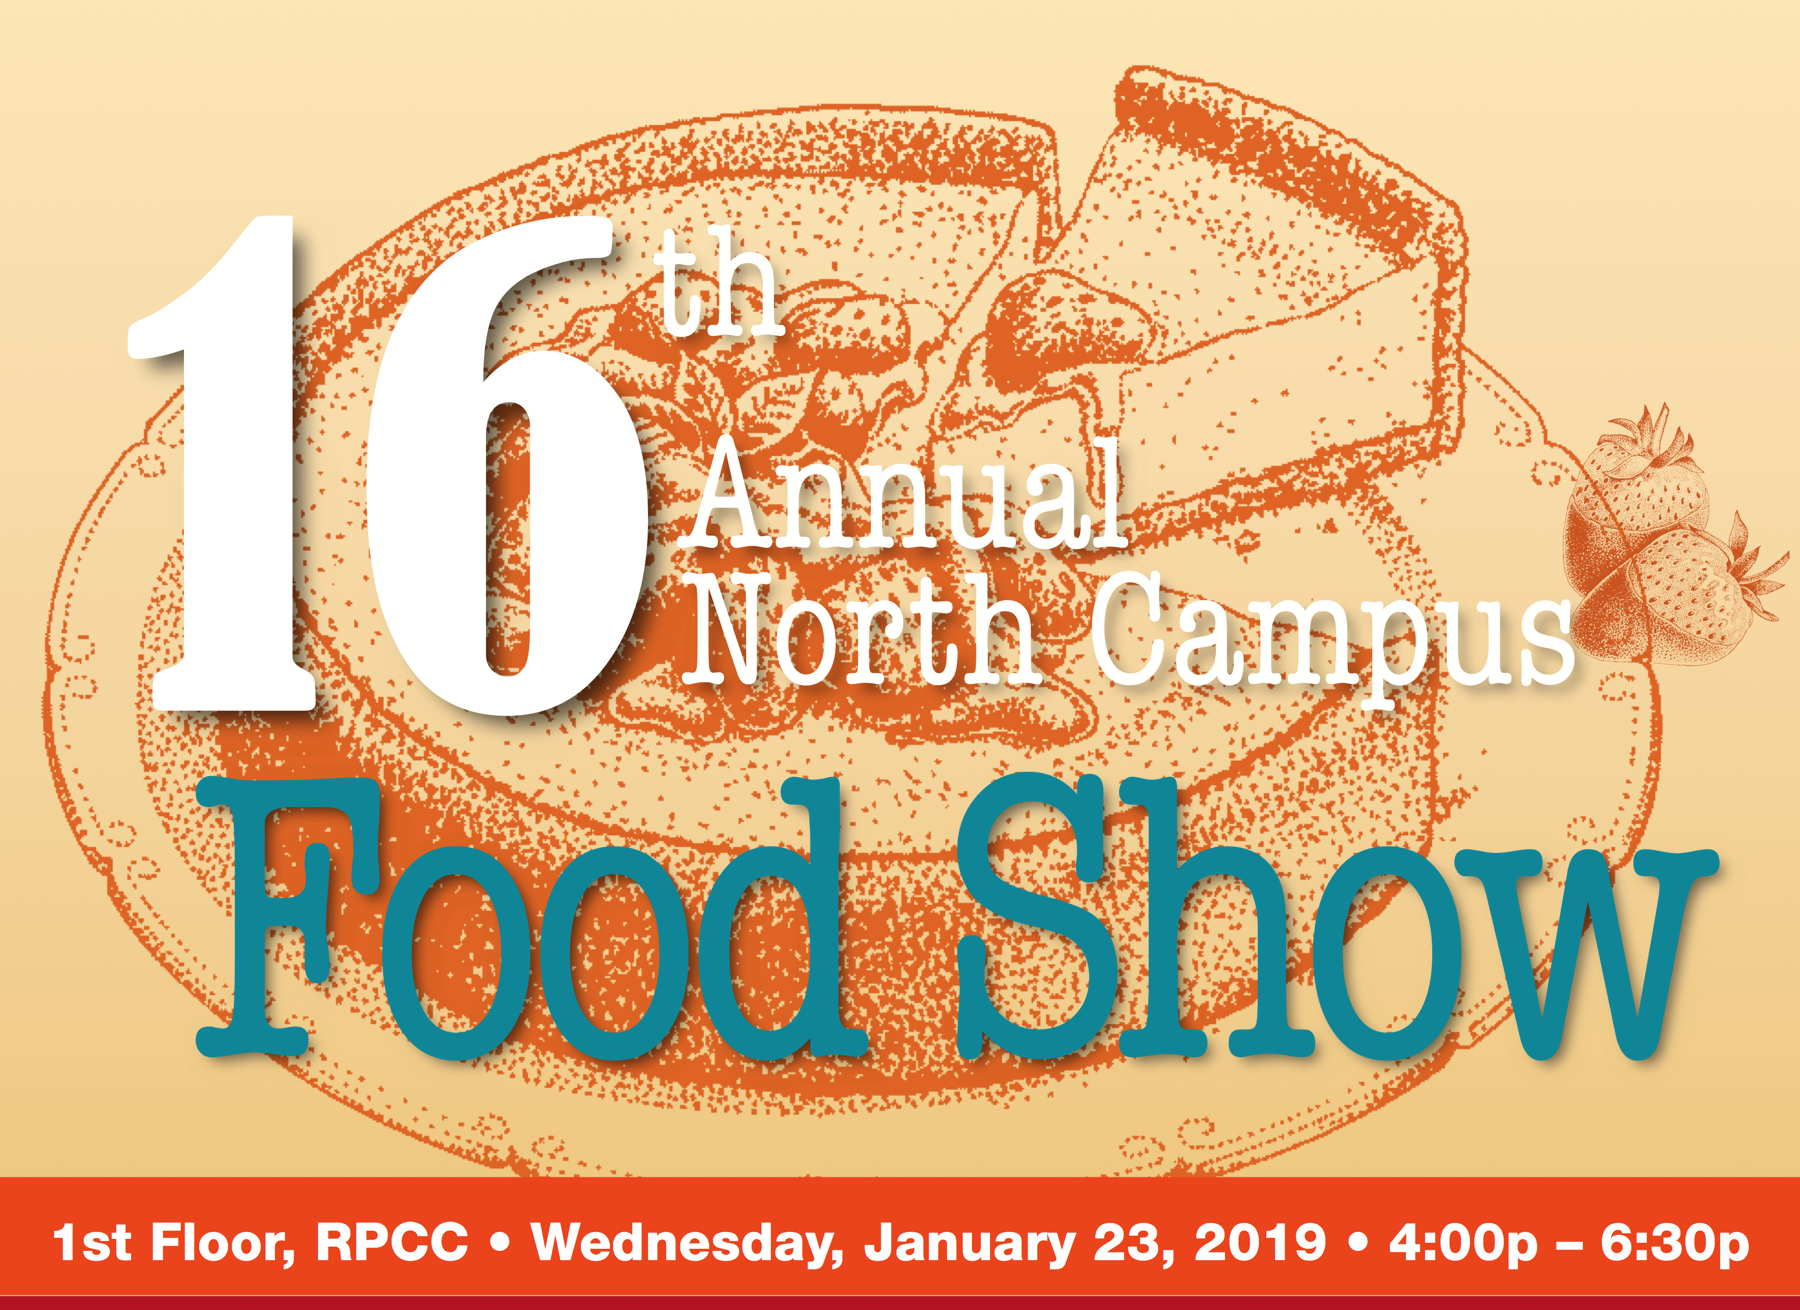 16th annual North Campus Food Show